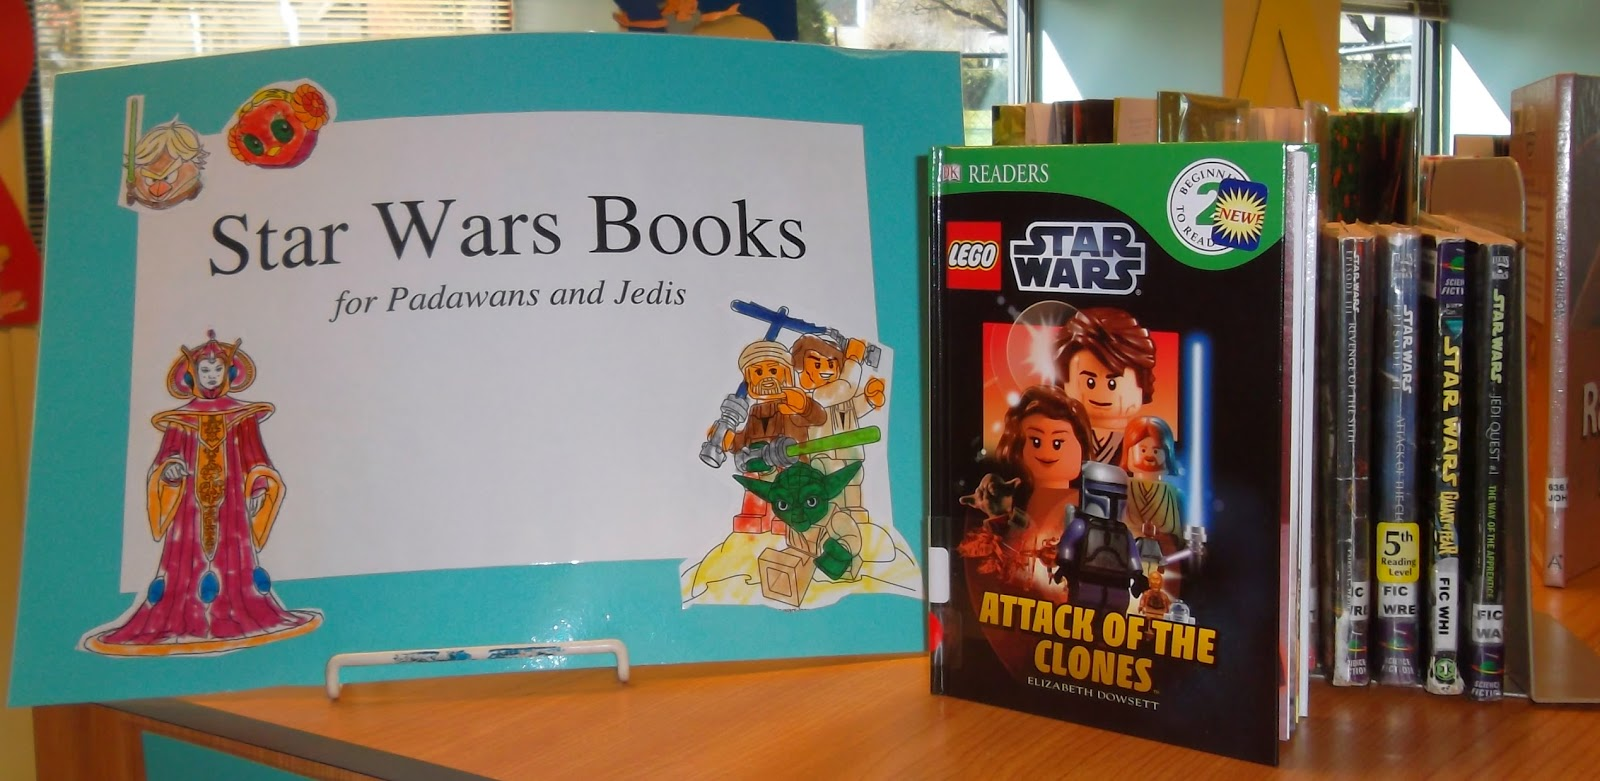 "Star Wars beginning readers' books propped facing forward with additional books shelved between bookends. To the left, a sign proclaims ""Star Wars Books for Padawans and Jedis."" The sign is decorated with cut-out characters from Angry Birds Star Wars and Lego Star Wars"